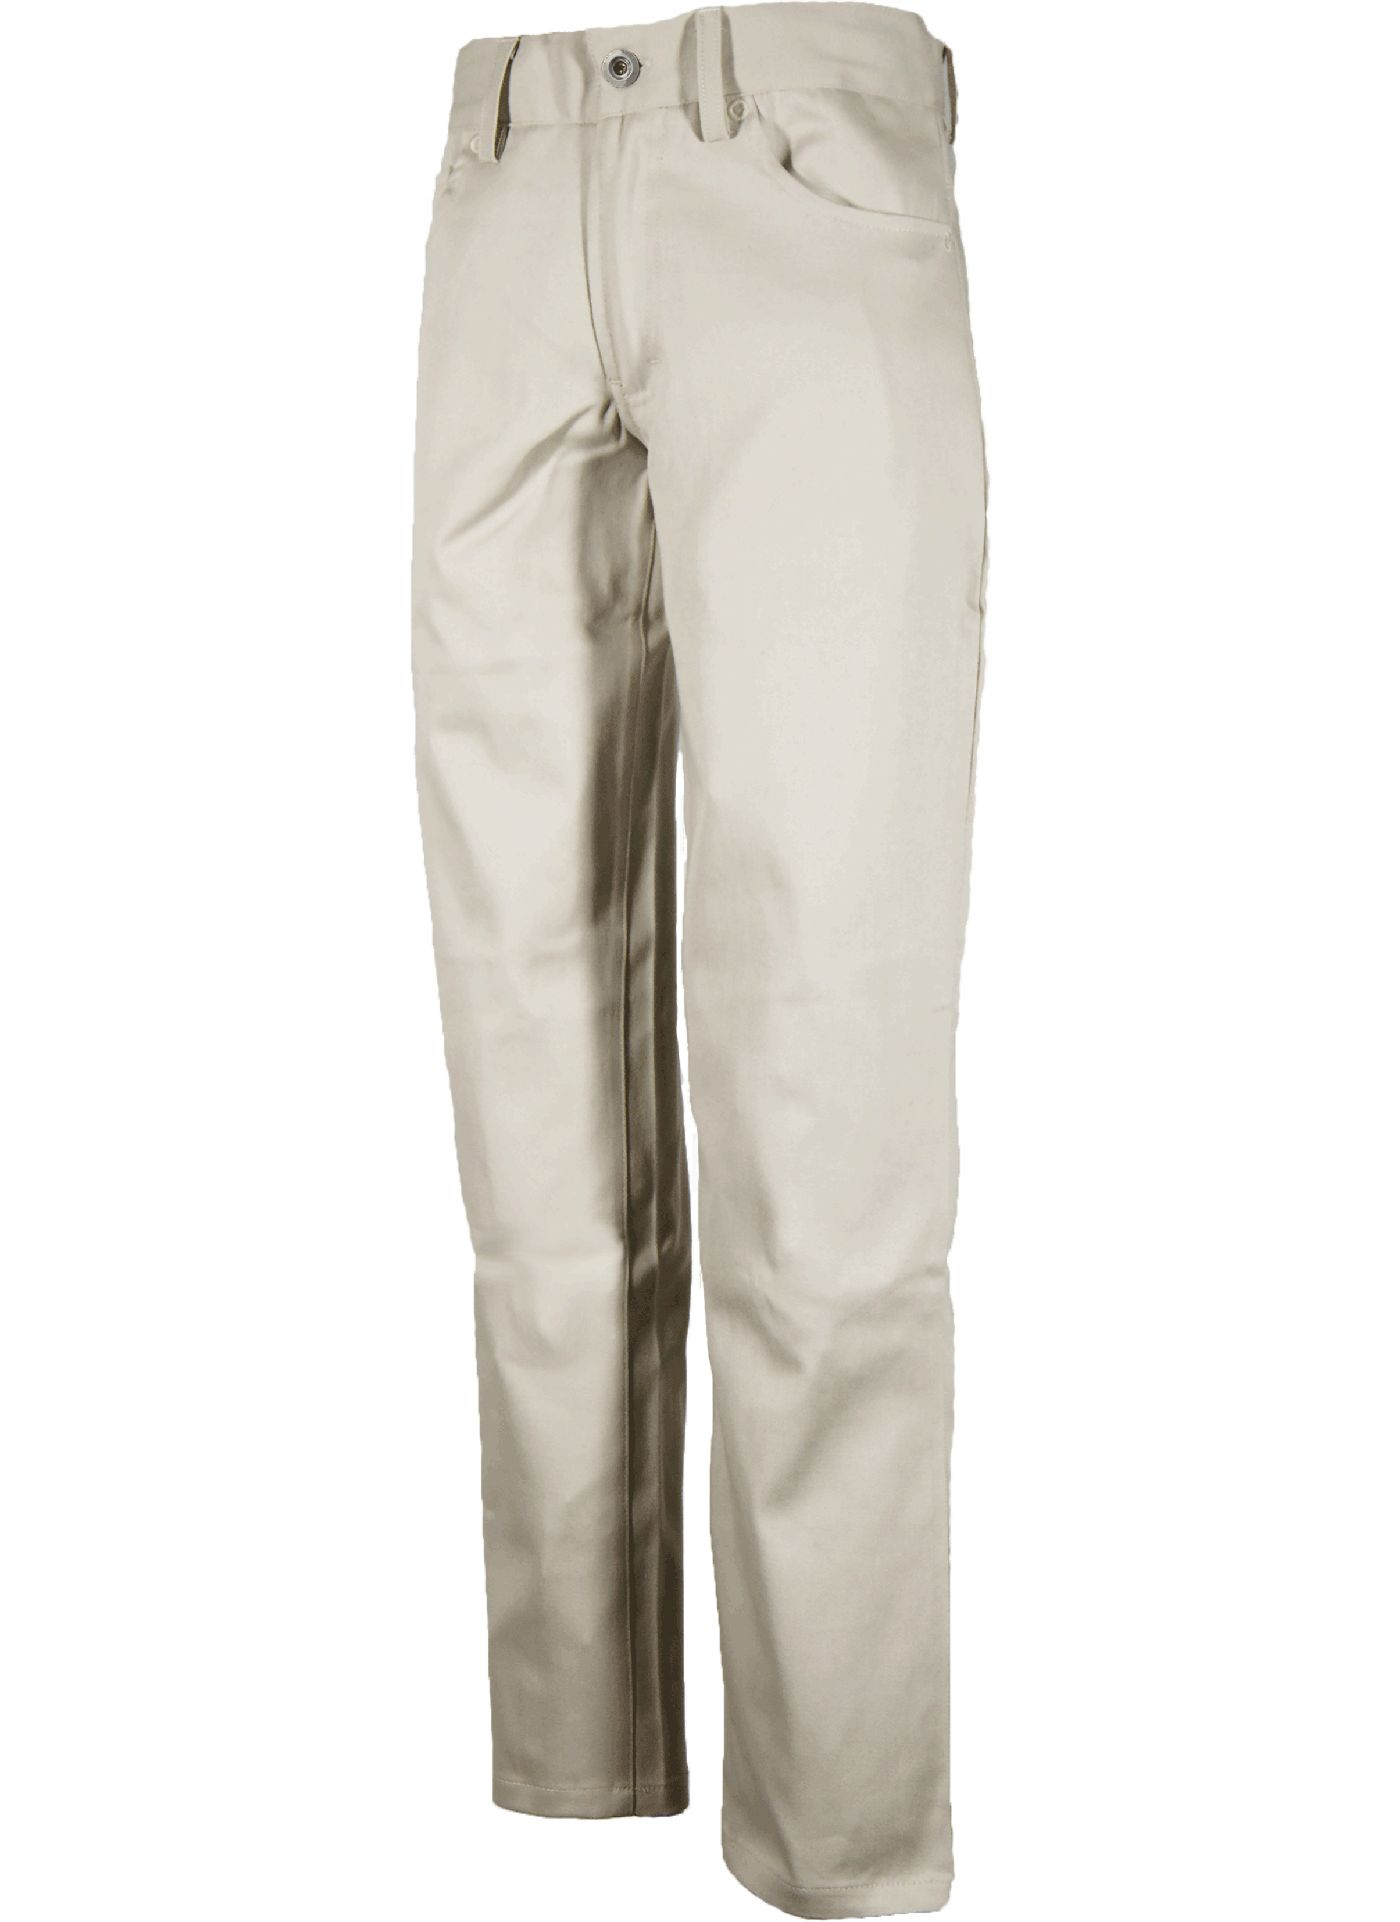 Garb Boys' Zane Golf Pants